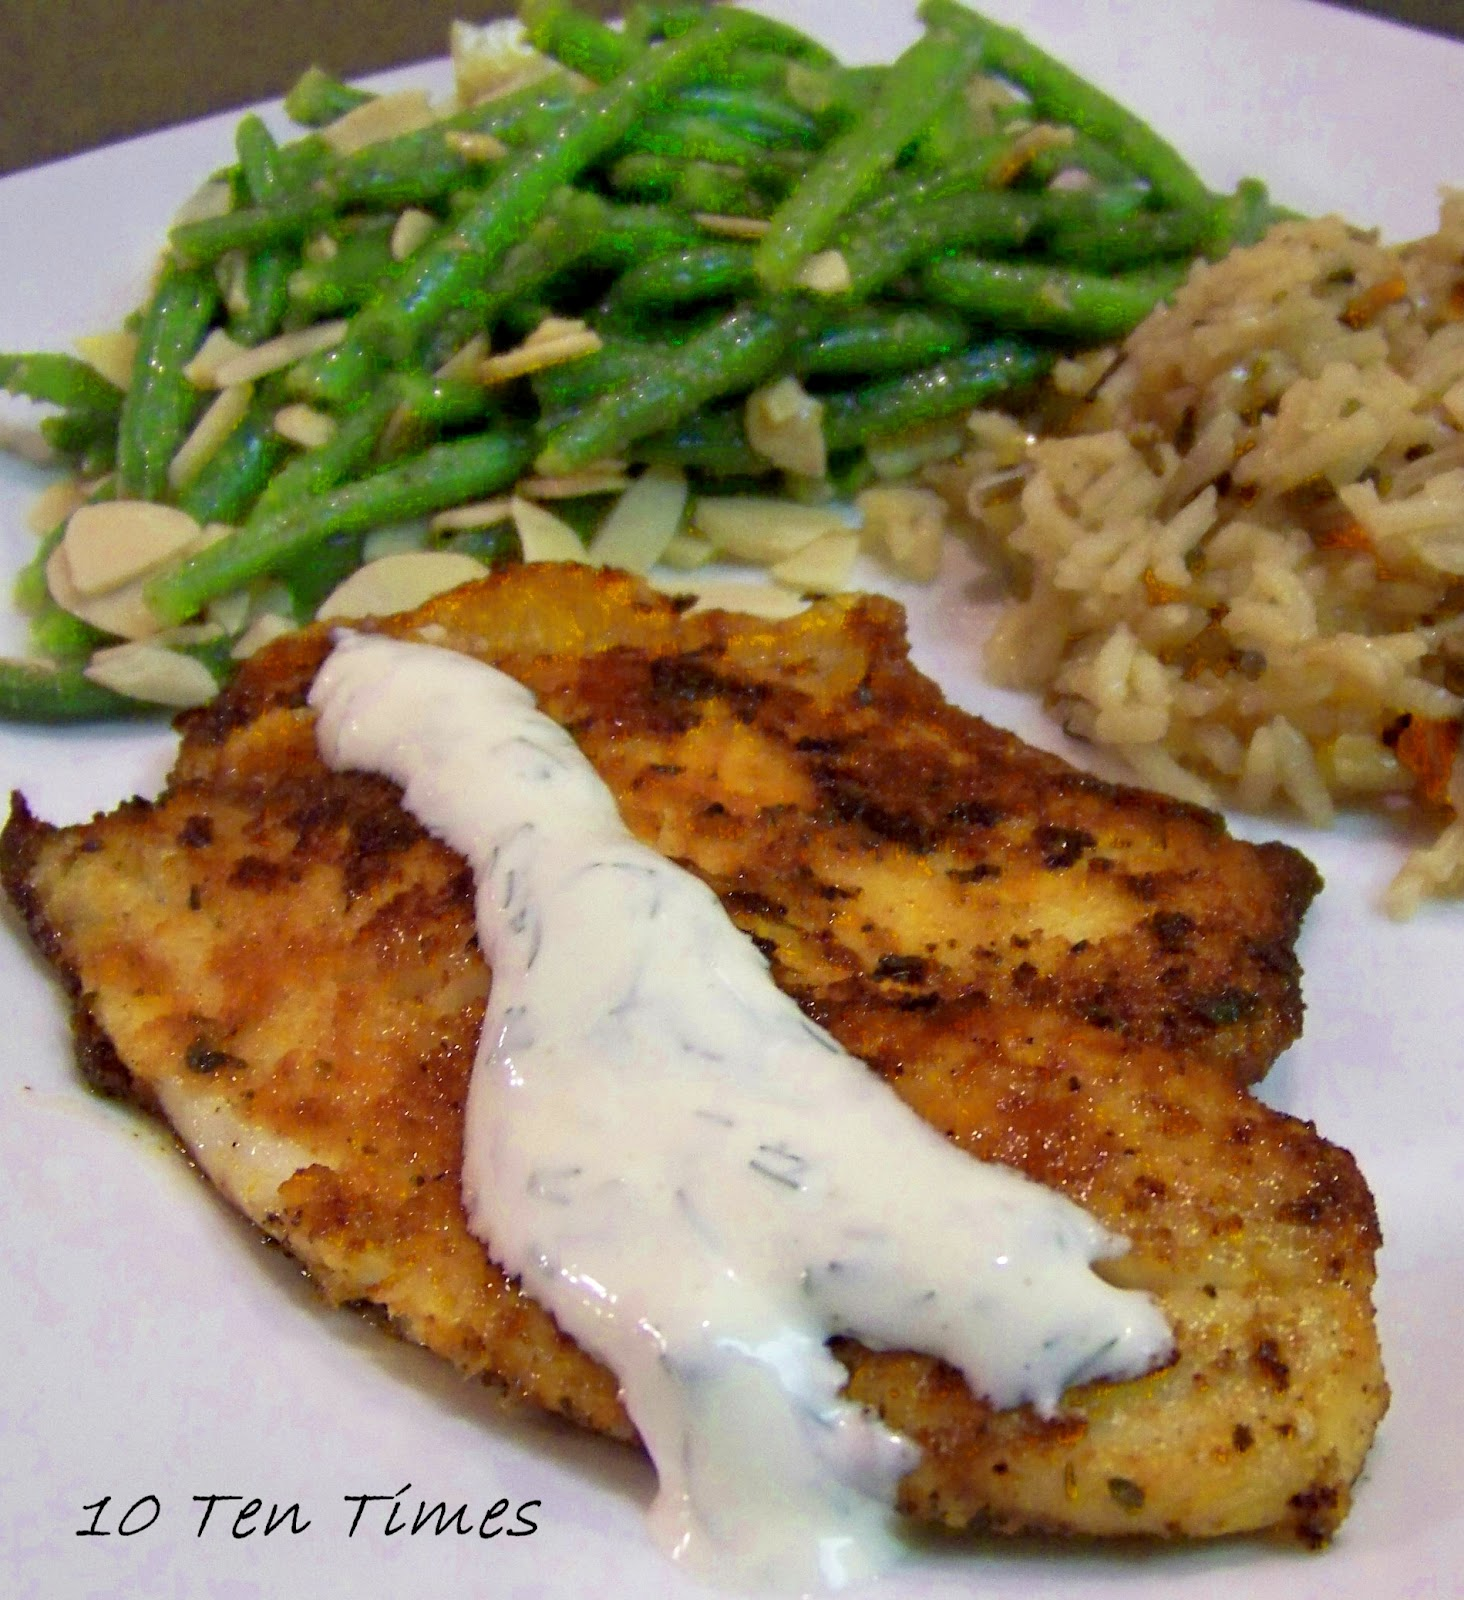 10 ten times seasoned tilapia with dill sauce for Fish seasoning for tilapia